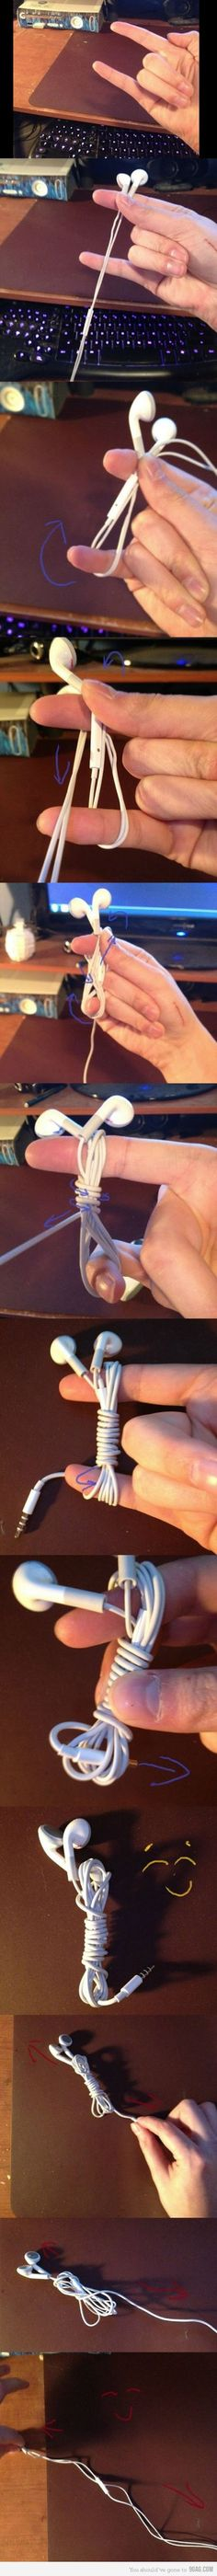 "This works!! I""ll no longer spend 5mins trying to untangle my earphones everytime I go to the gym."